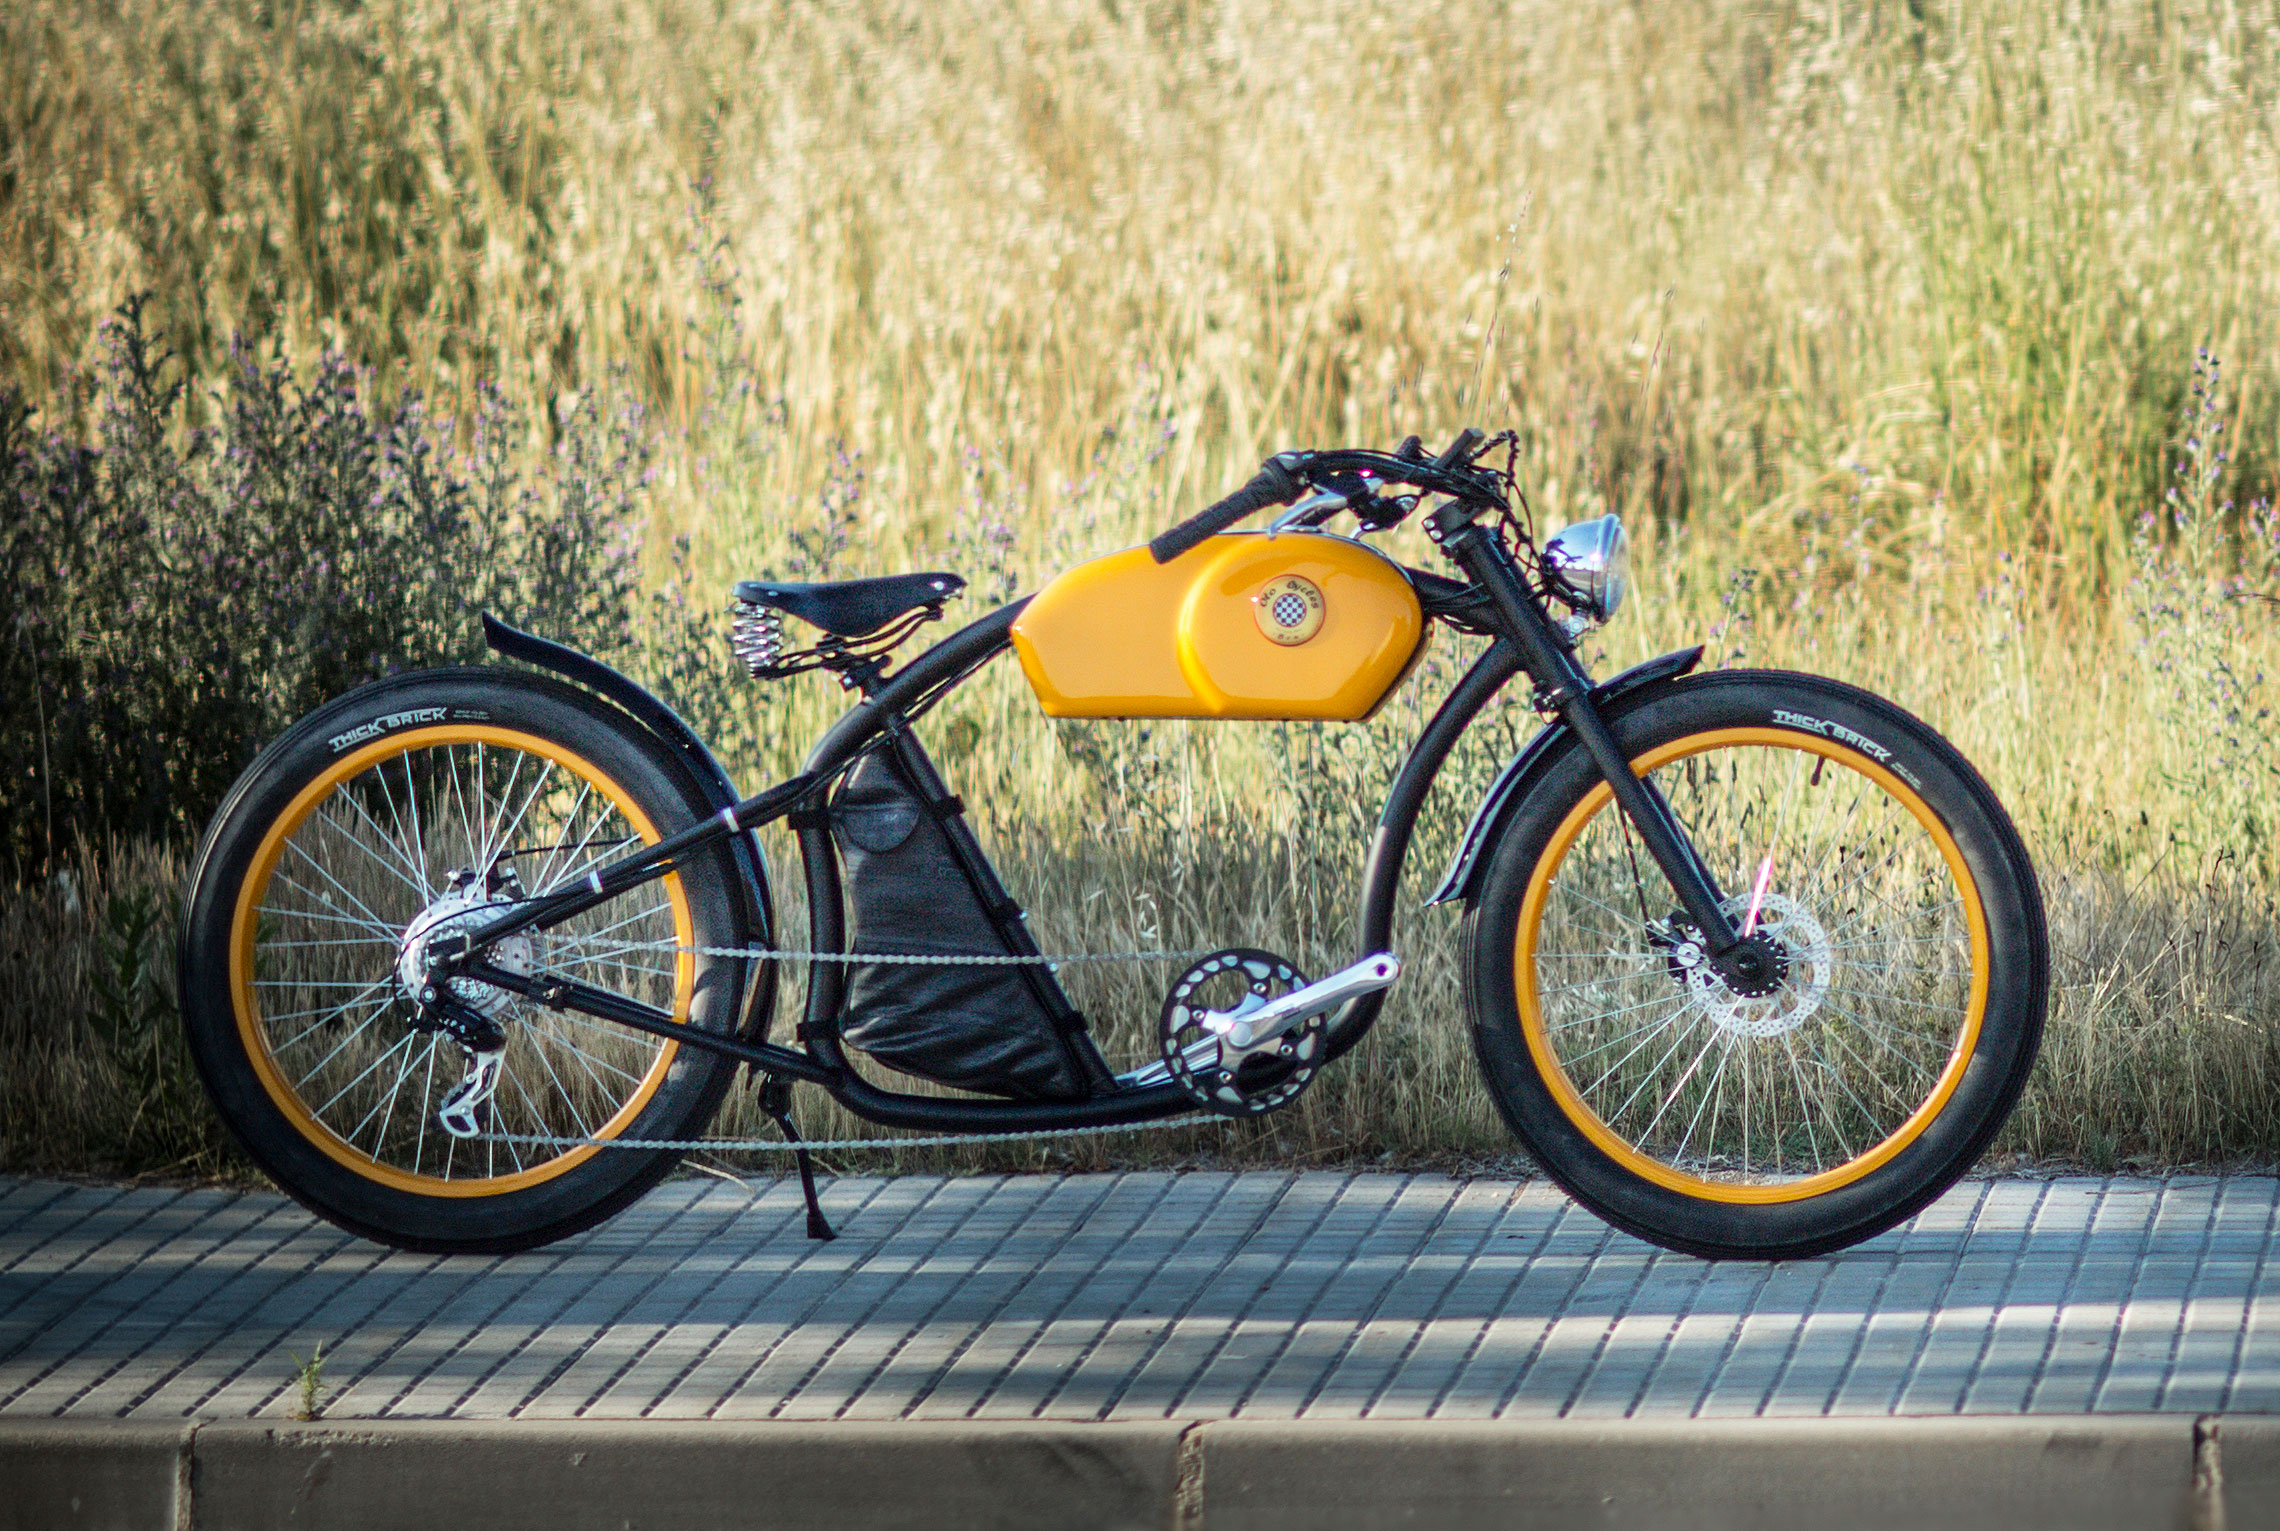 Otocycles launches RaceR their first e-bike inspired by the popular Cafe Racer